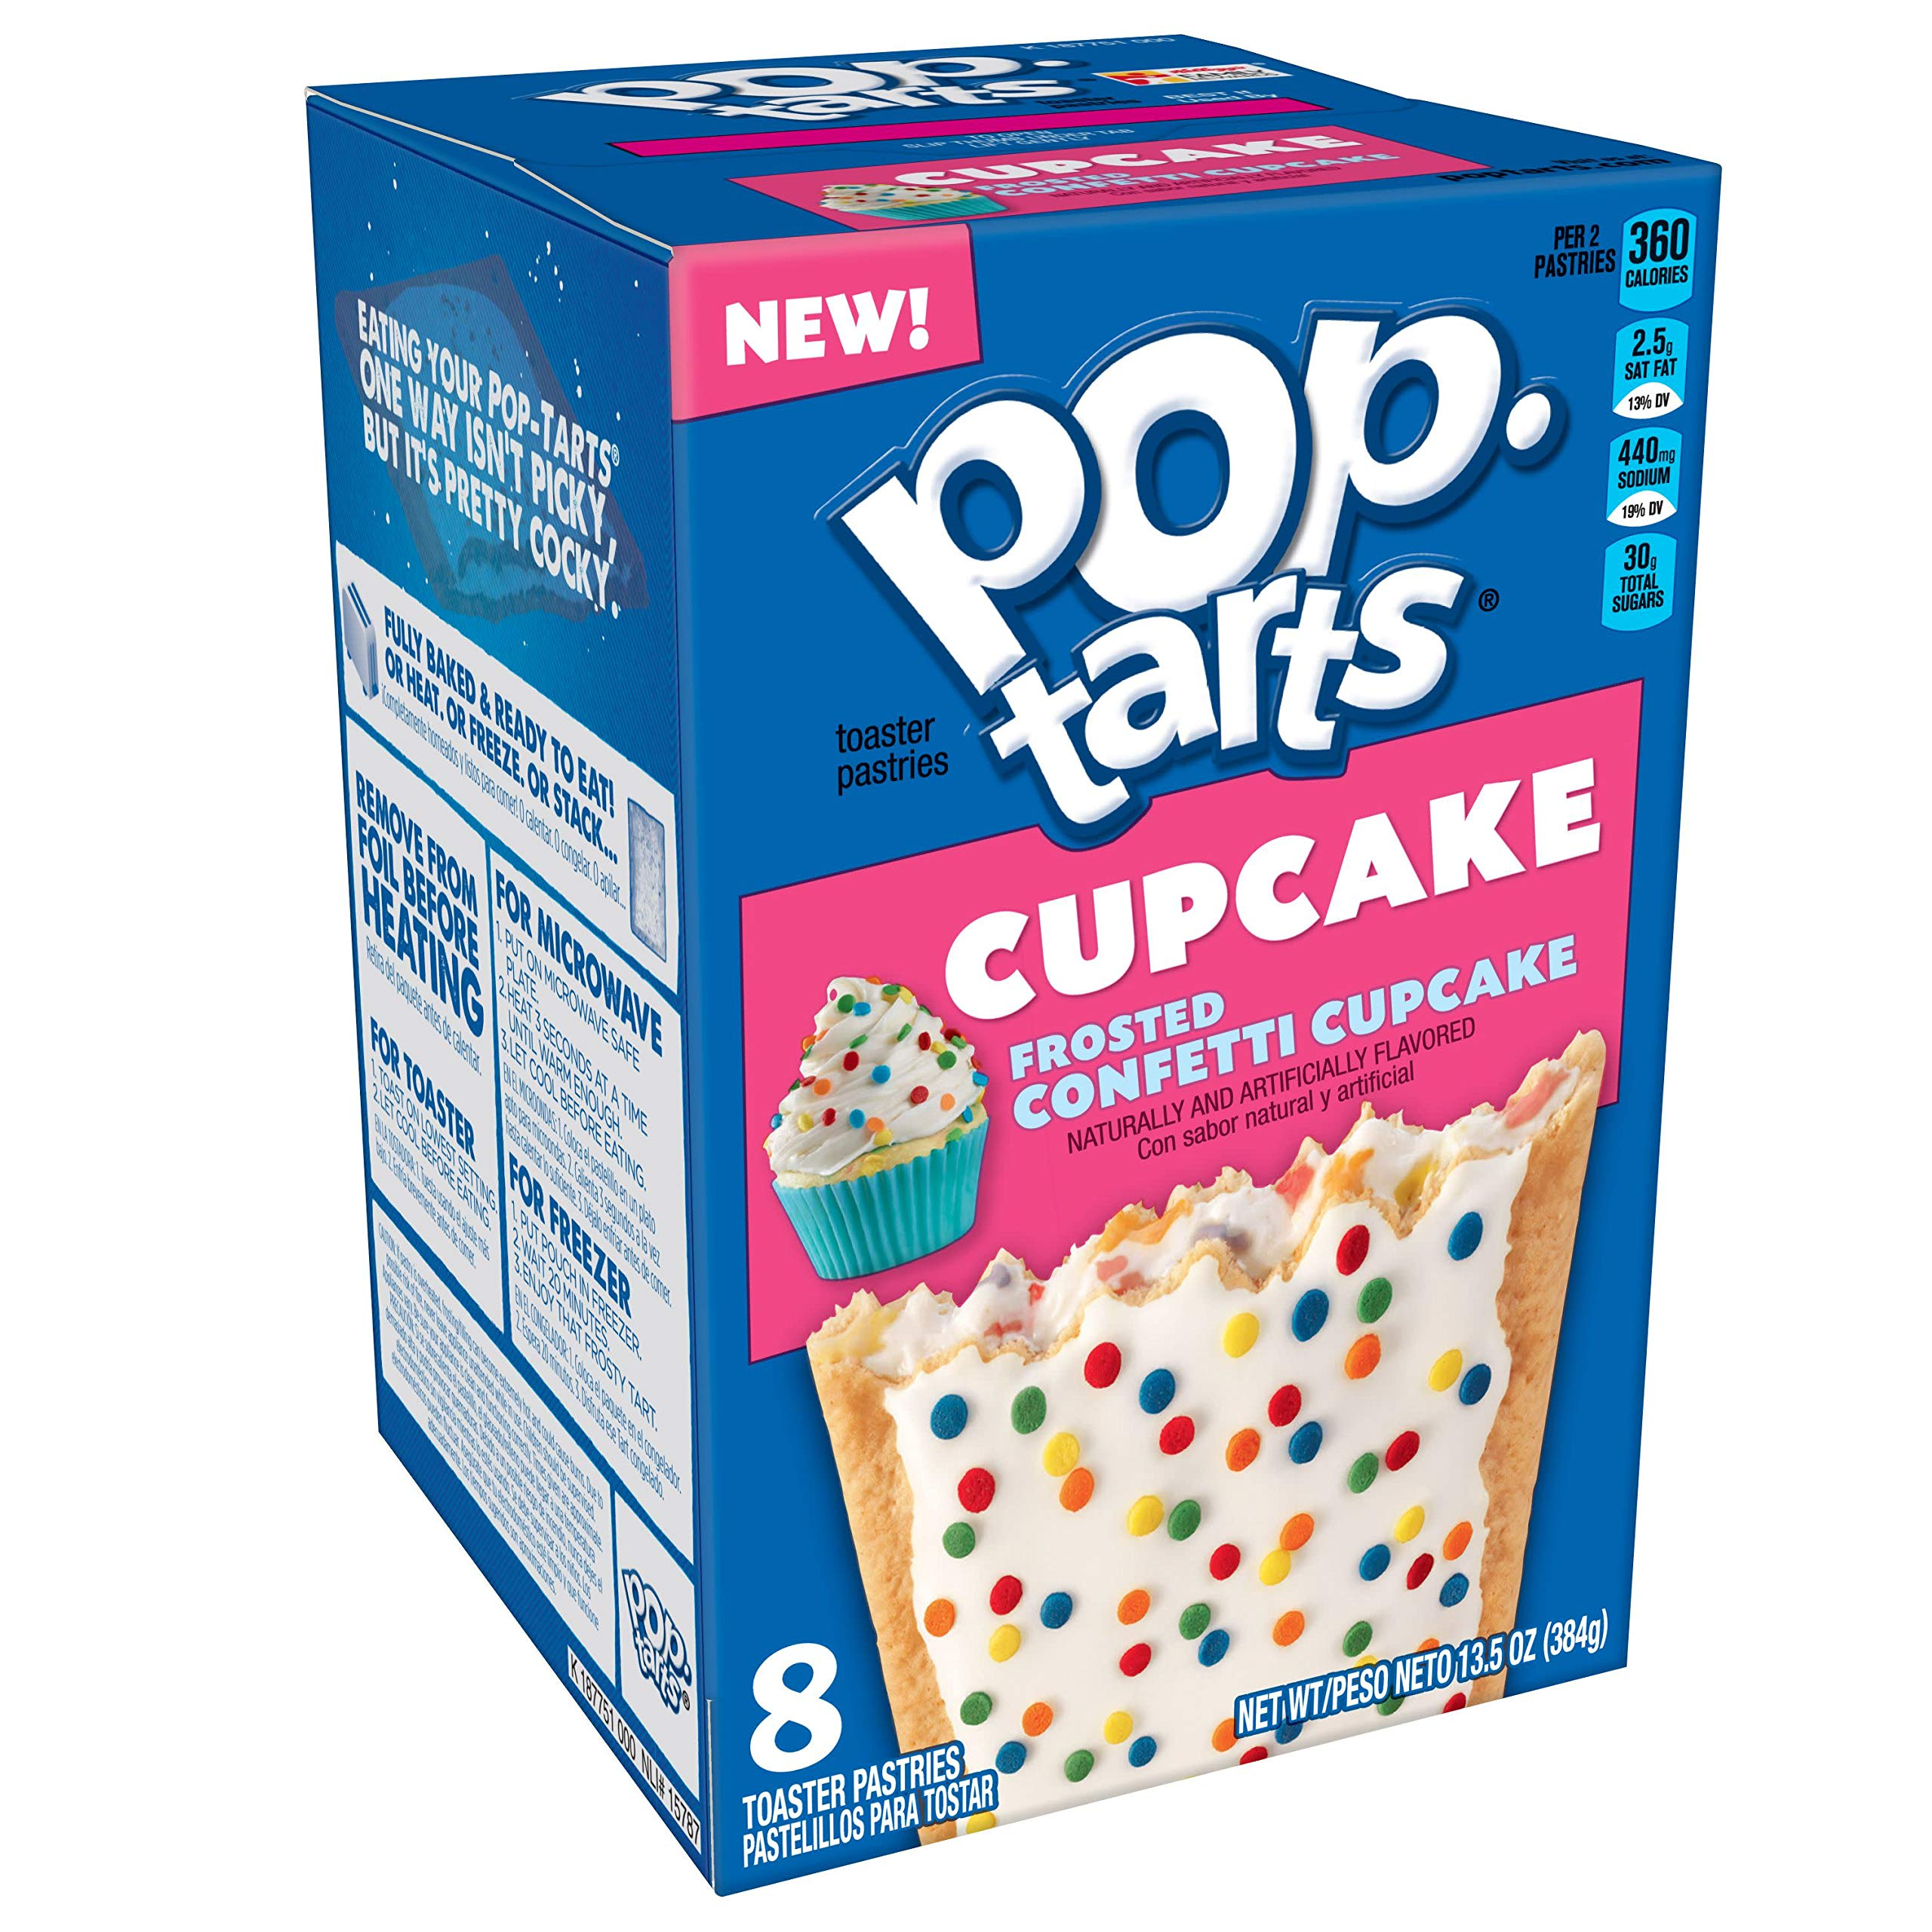 Pop-Tarts Cupcake, Breakfast Toaster Pastries, Frosted Confetti Cupcake, 13.5oz Box (Pack of 12) by Pop-Tarts